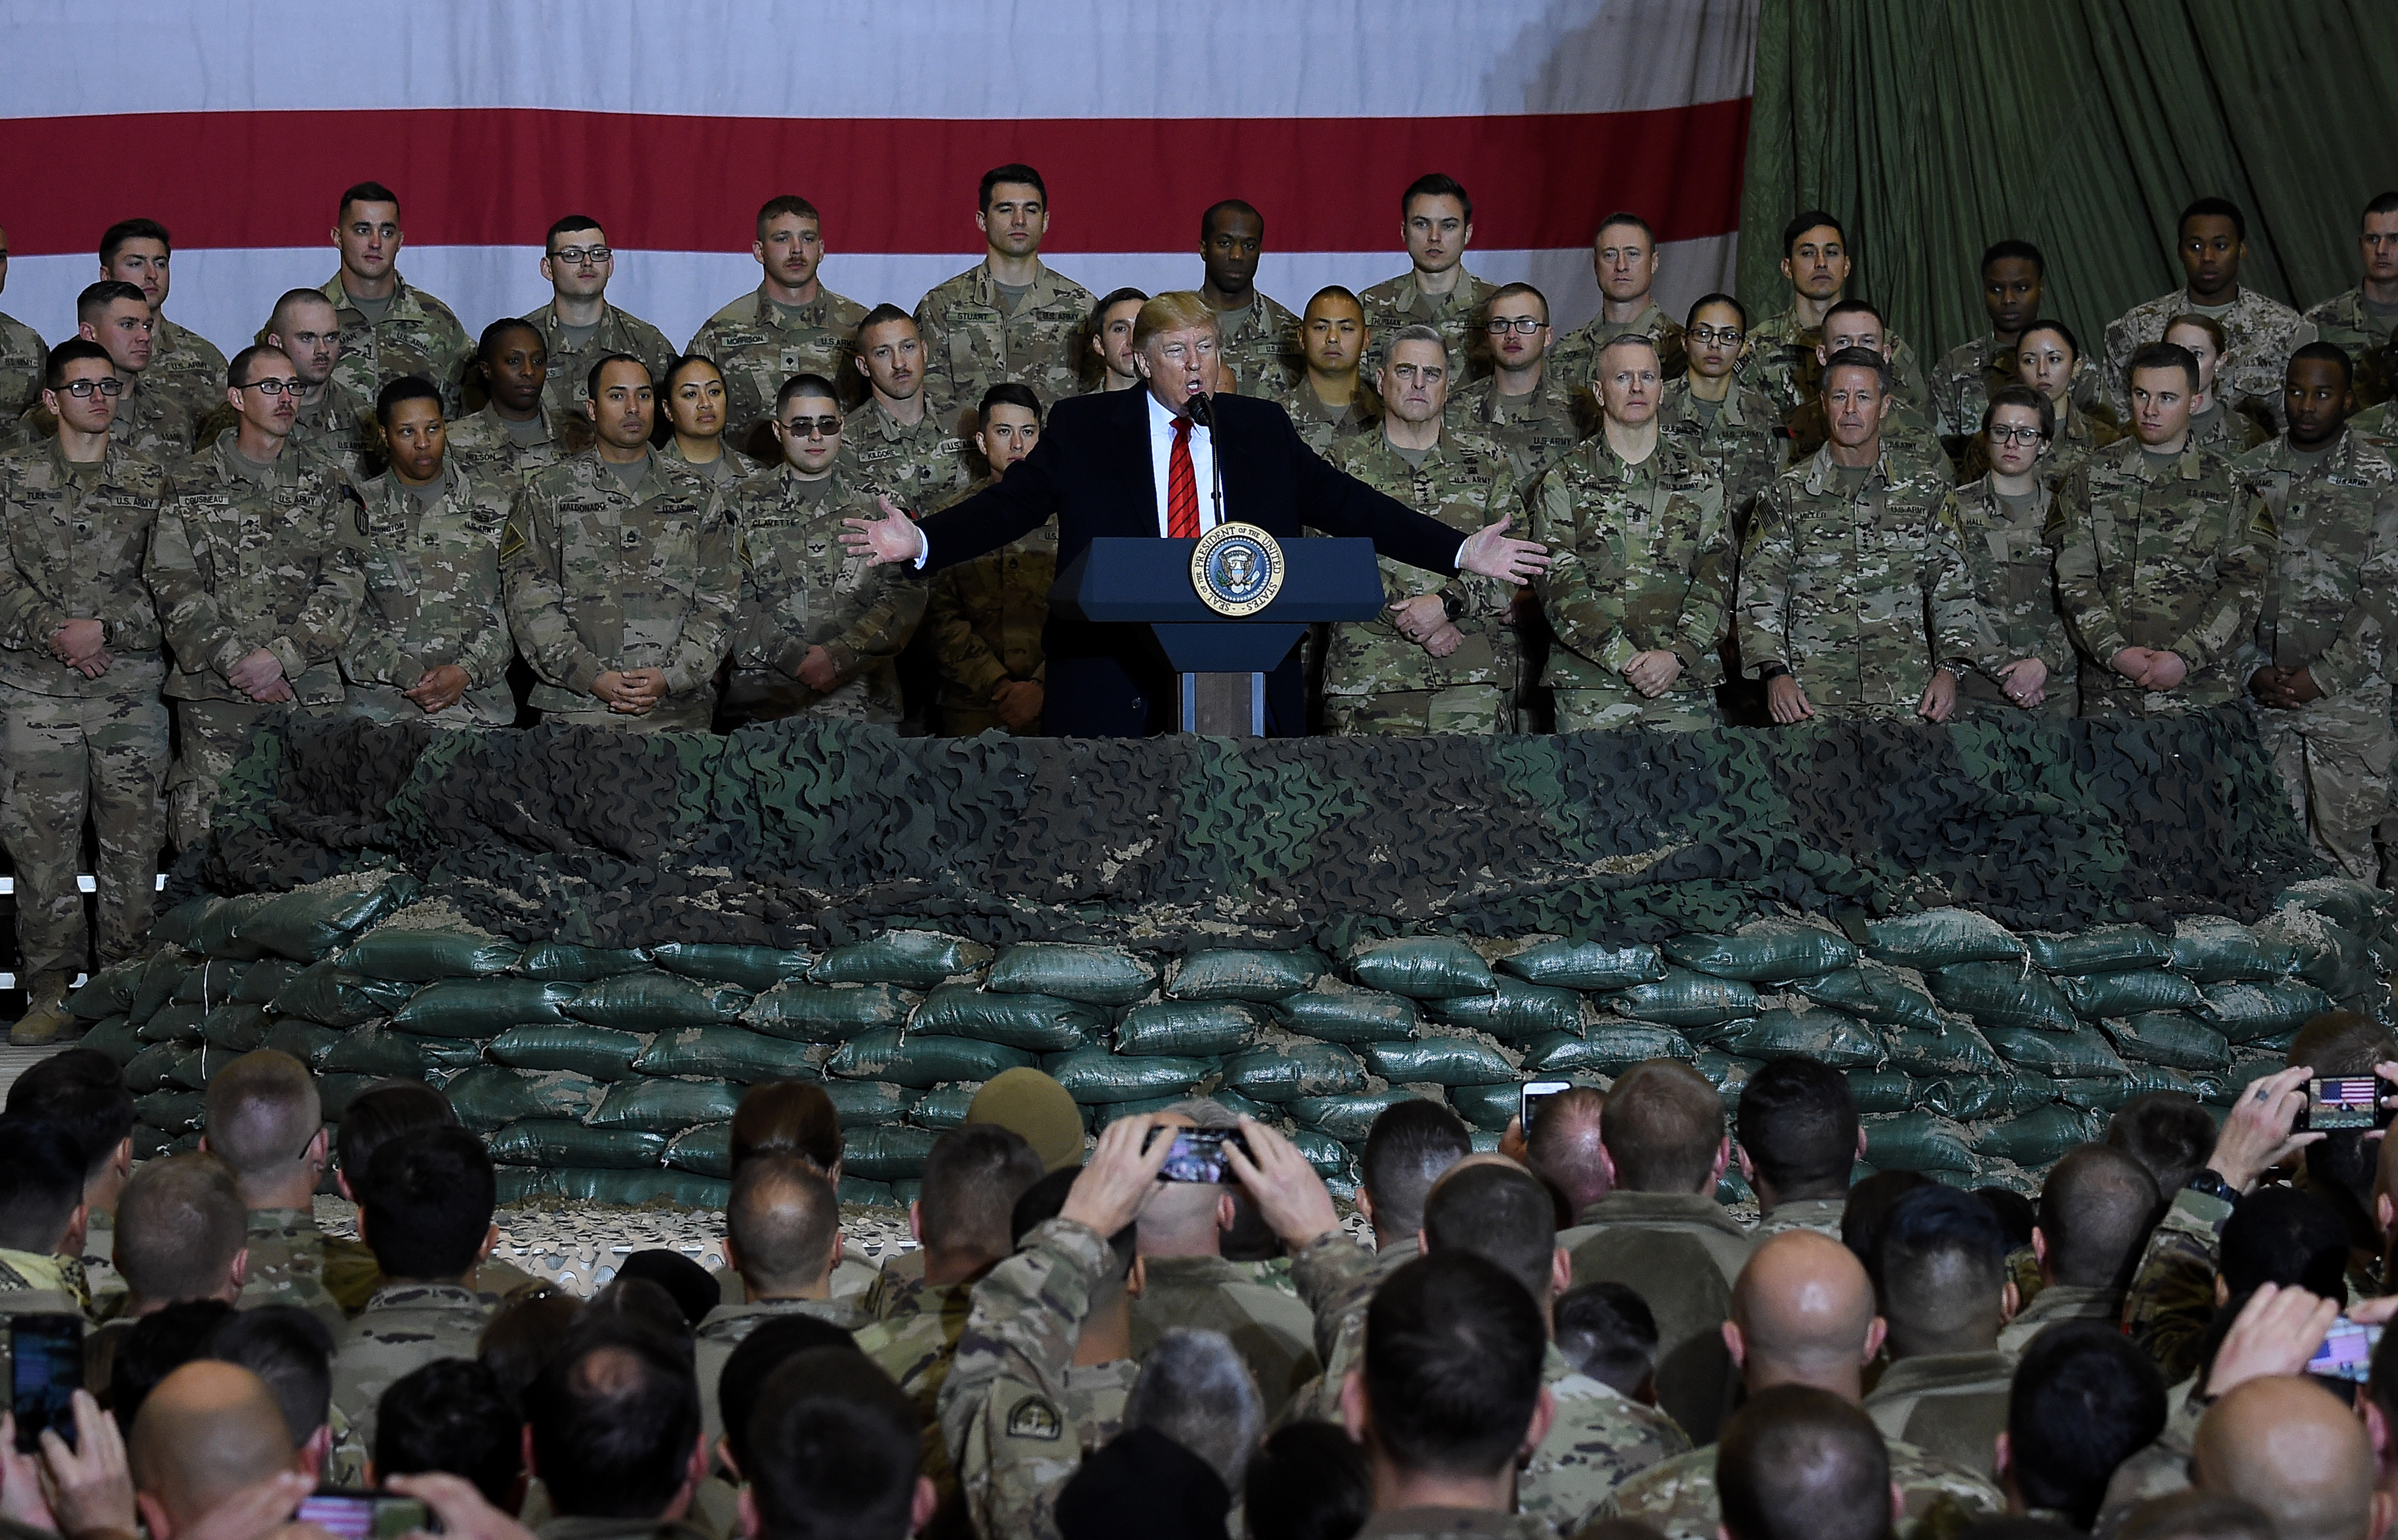 TOPSHOT - US President Donald Trump speaks to the troops during a surprise Thanksgiving day visit at Bagram Air Field, on November 28, 2019 in Afghanistan. (Photo by Olivier Douliery / AFP) (Photo by OLIVIER DOULIERY/AFP via Getty Images)